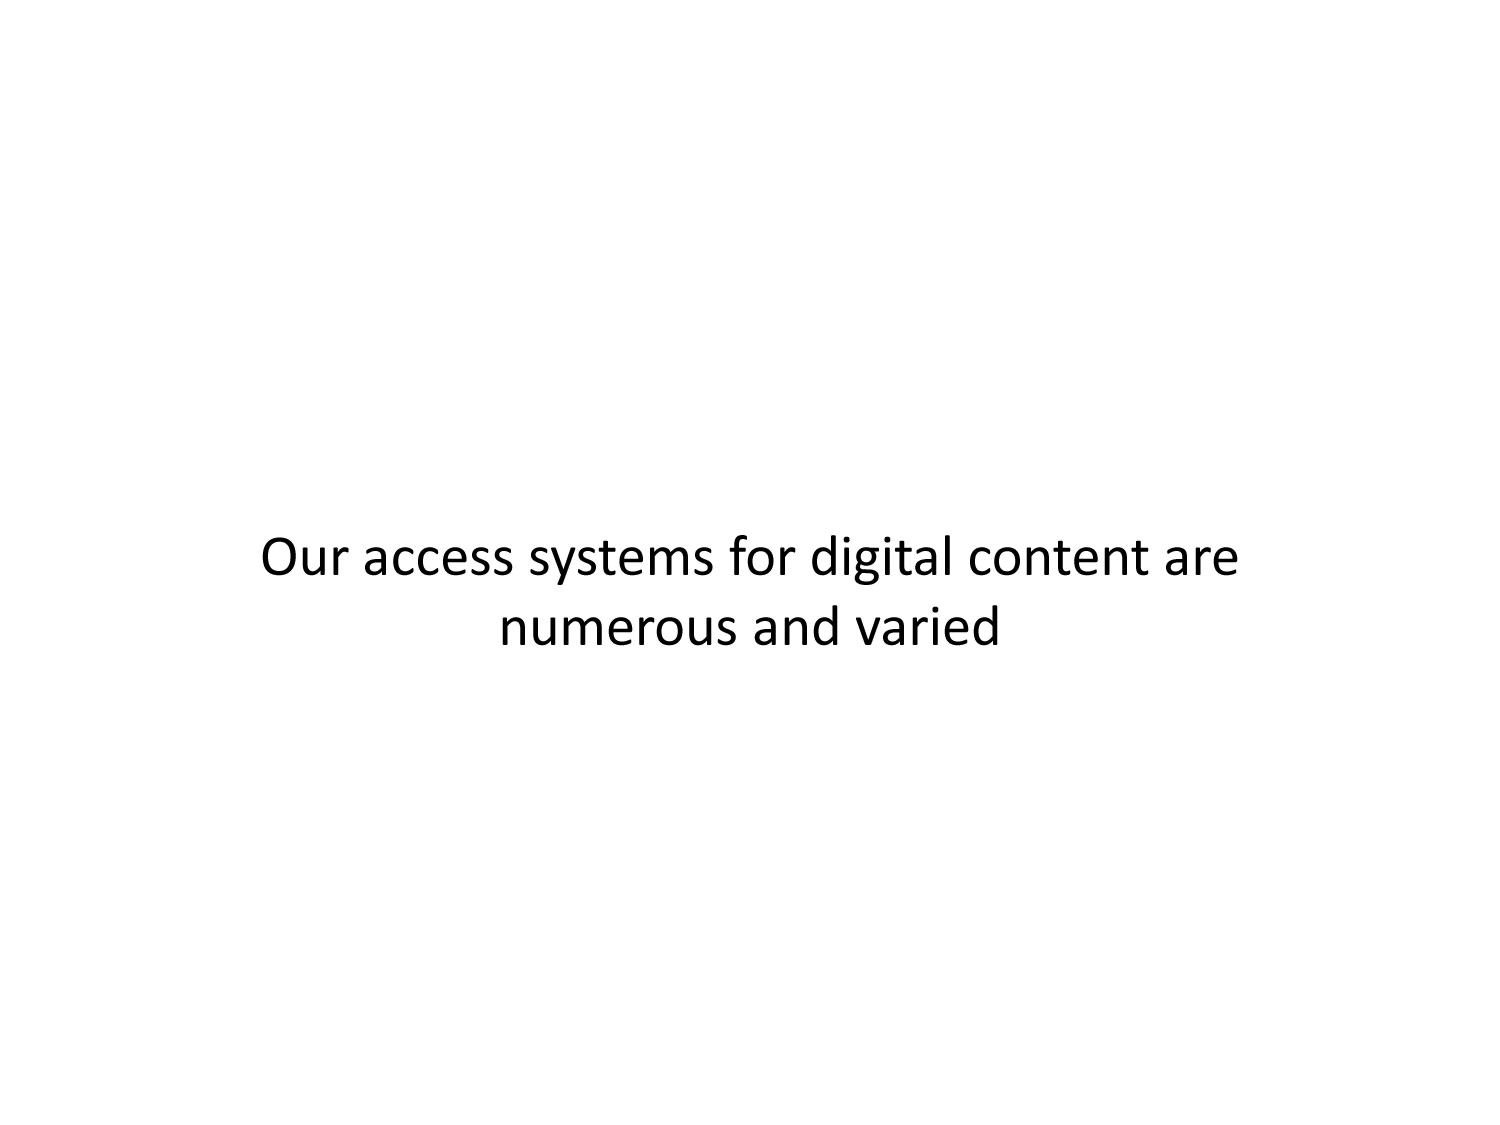 Collaborative Digital Repository Opportunities                                                                                                      [Sequence #]: 18 of 45